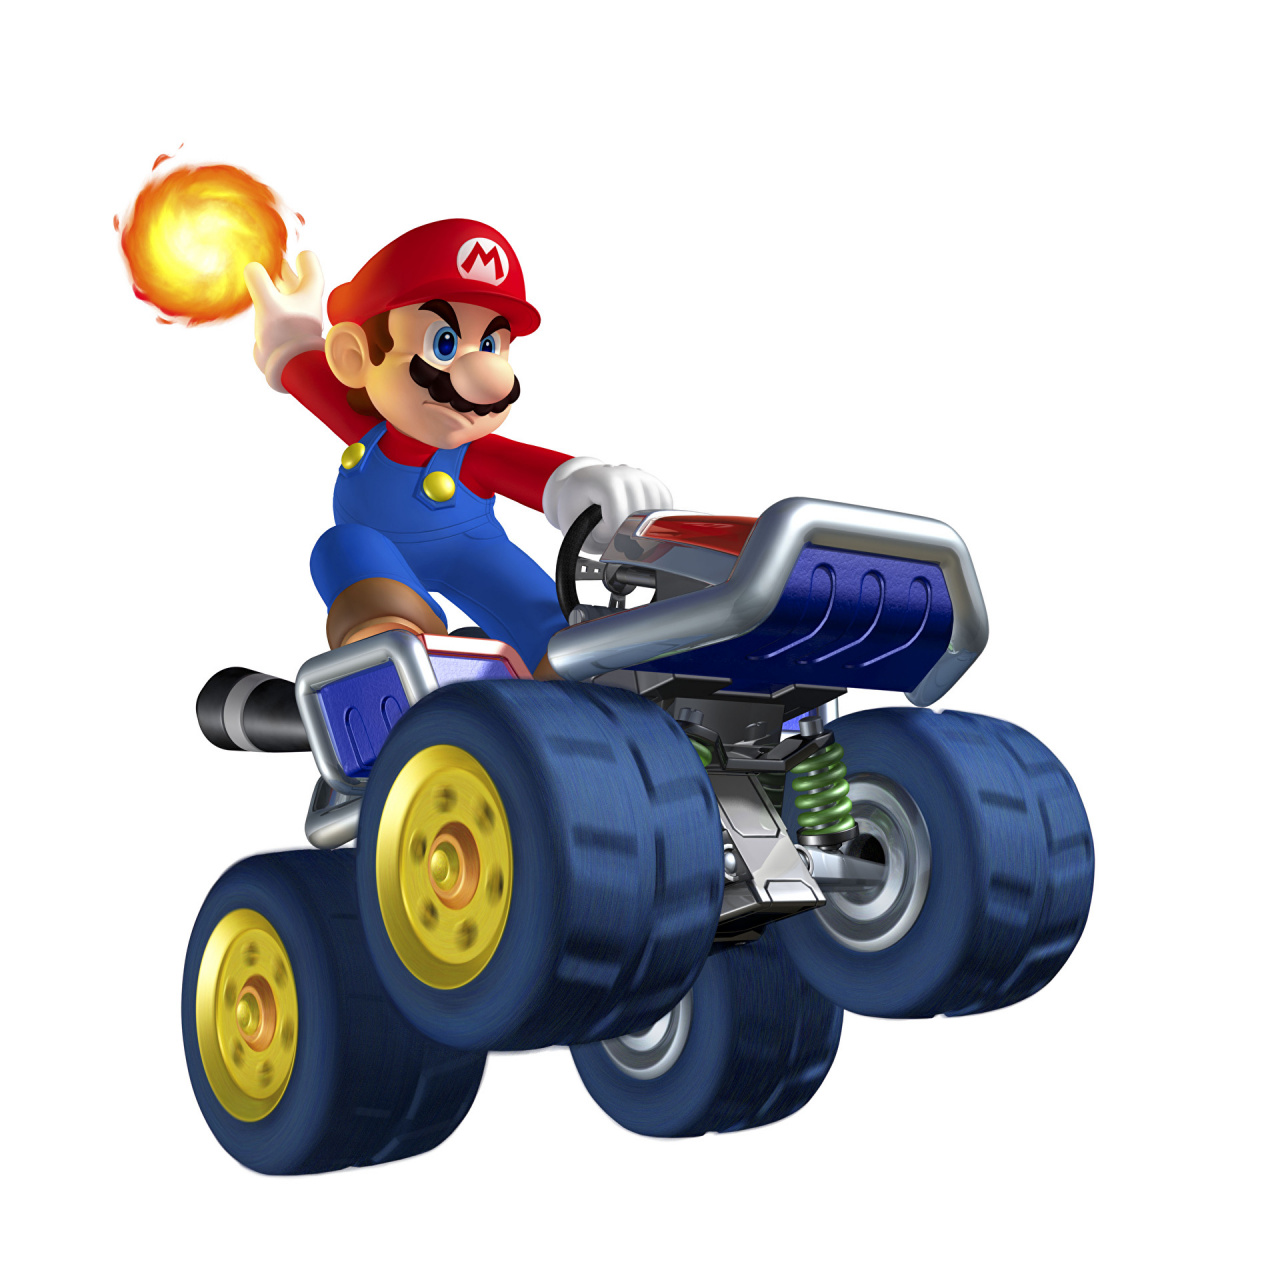 Race For The Fastest Mario